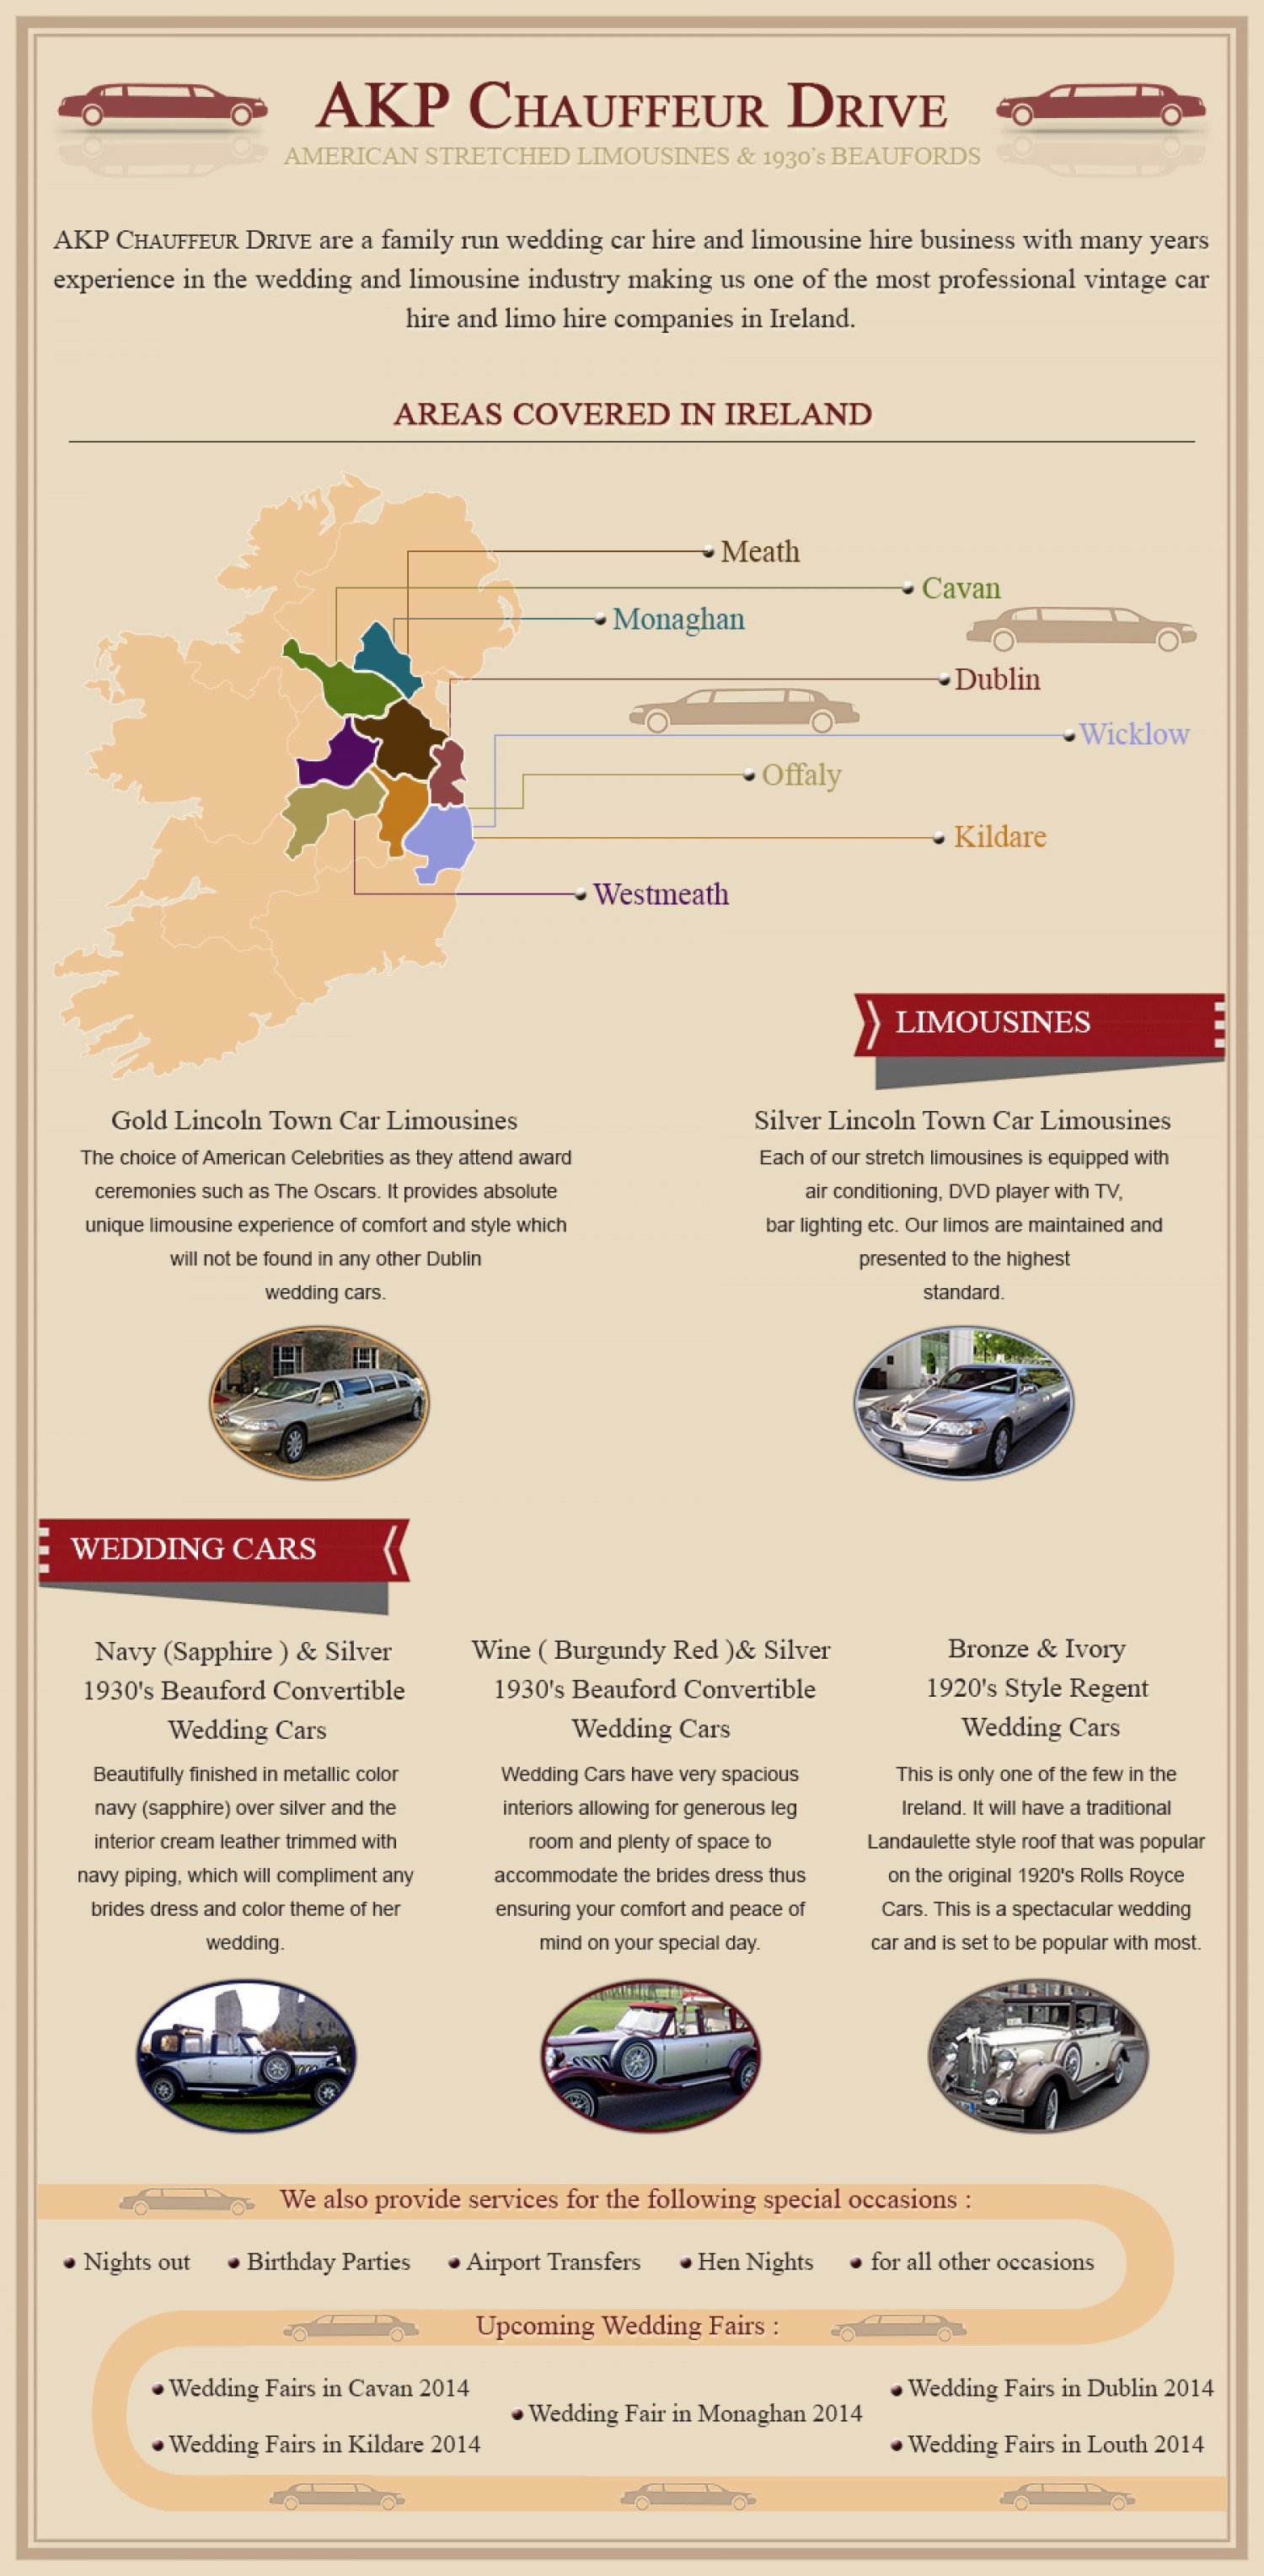 Wedding Car Hire  & Limousine Hire in Ireland Infographic